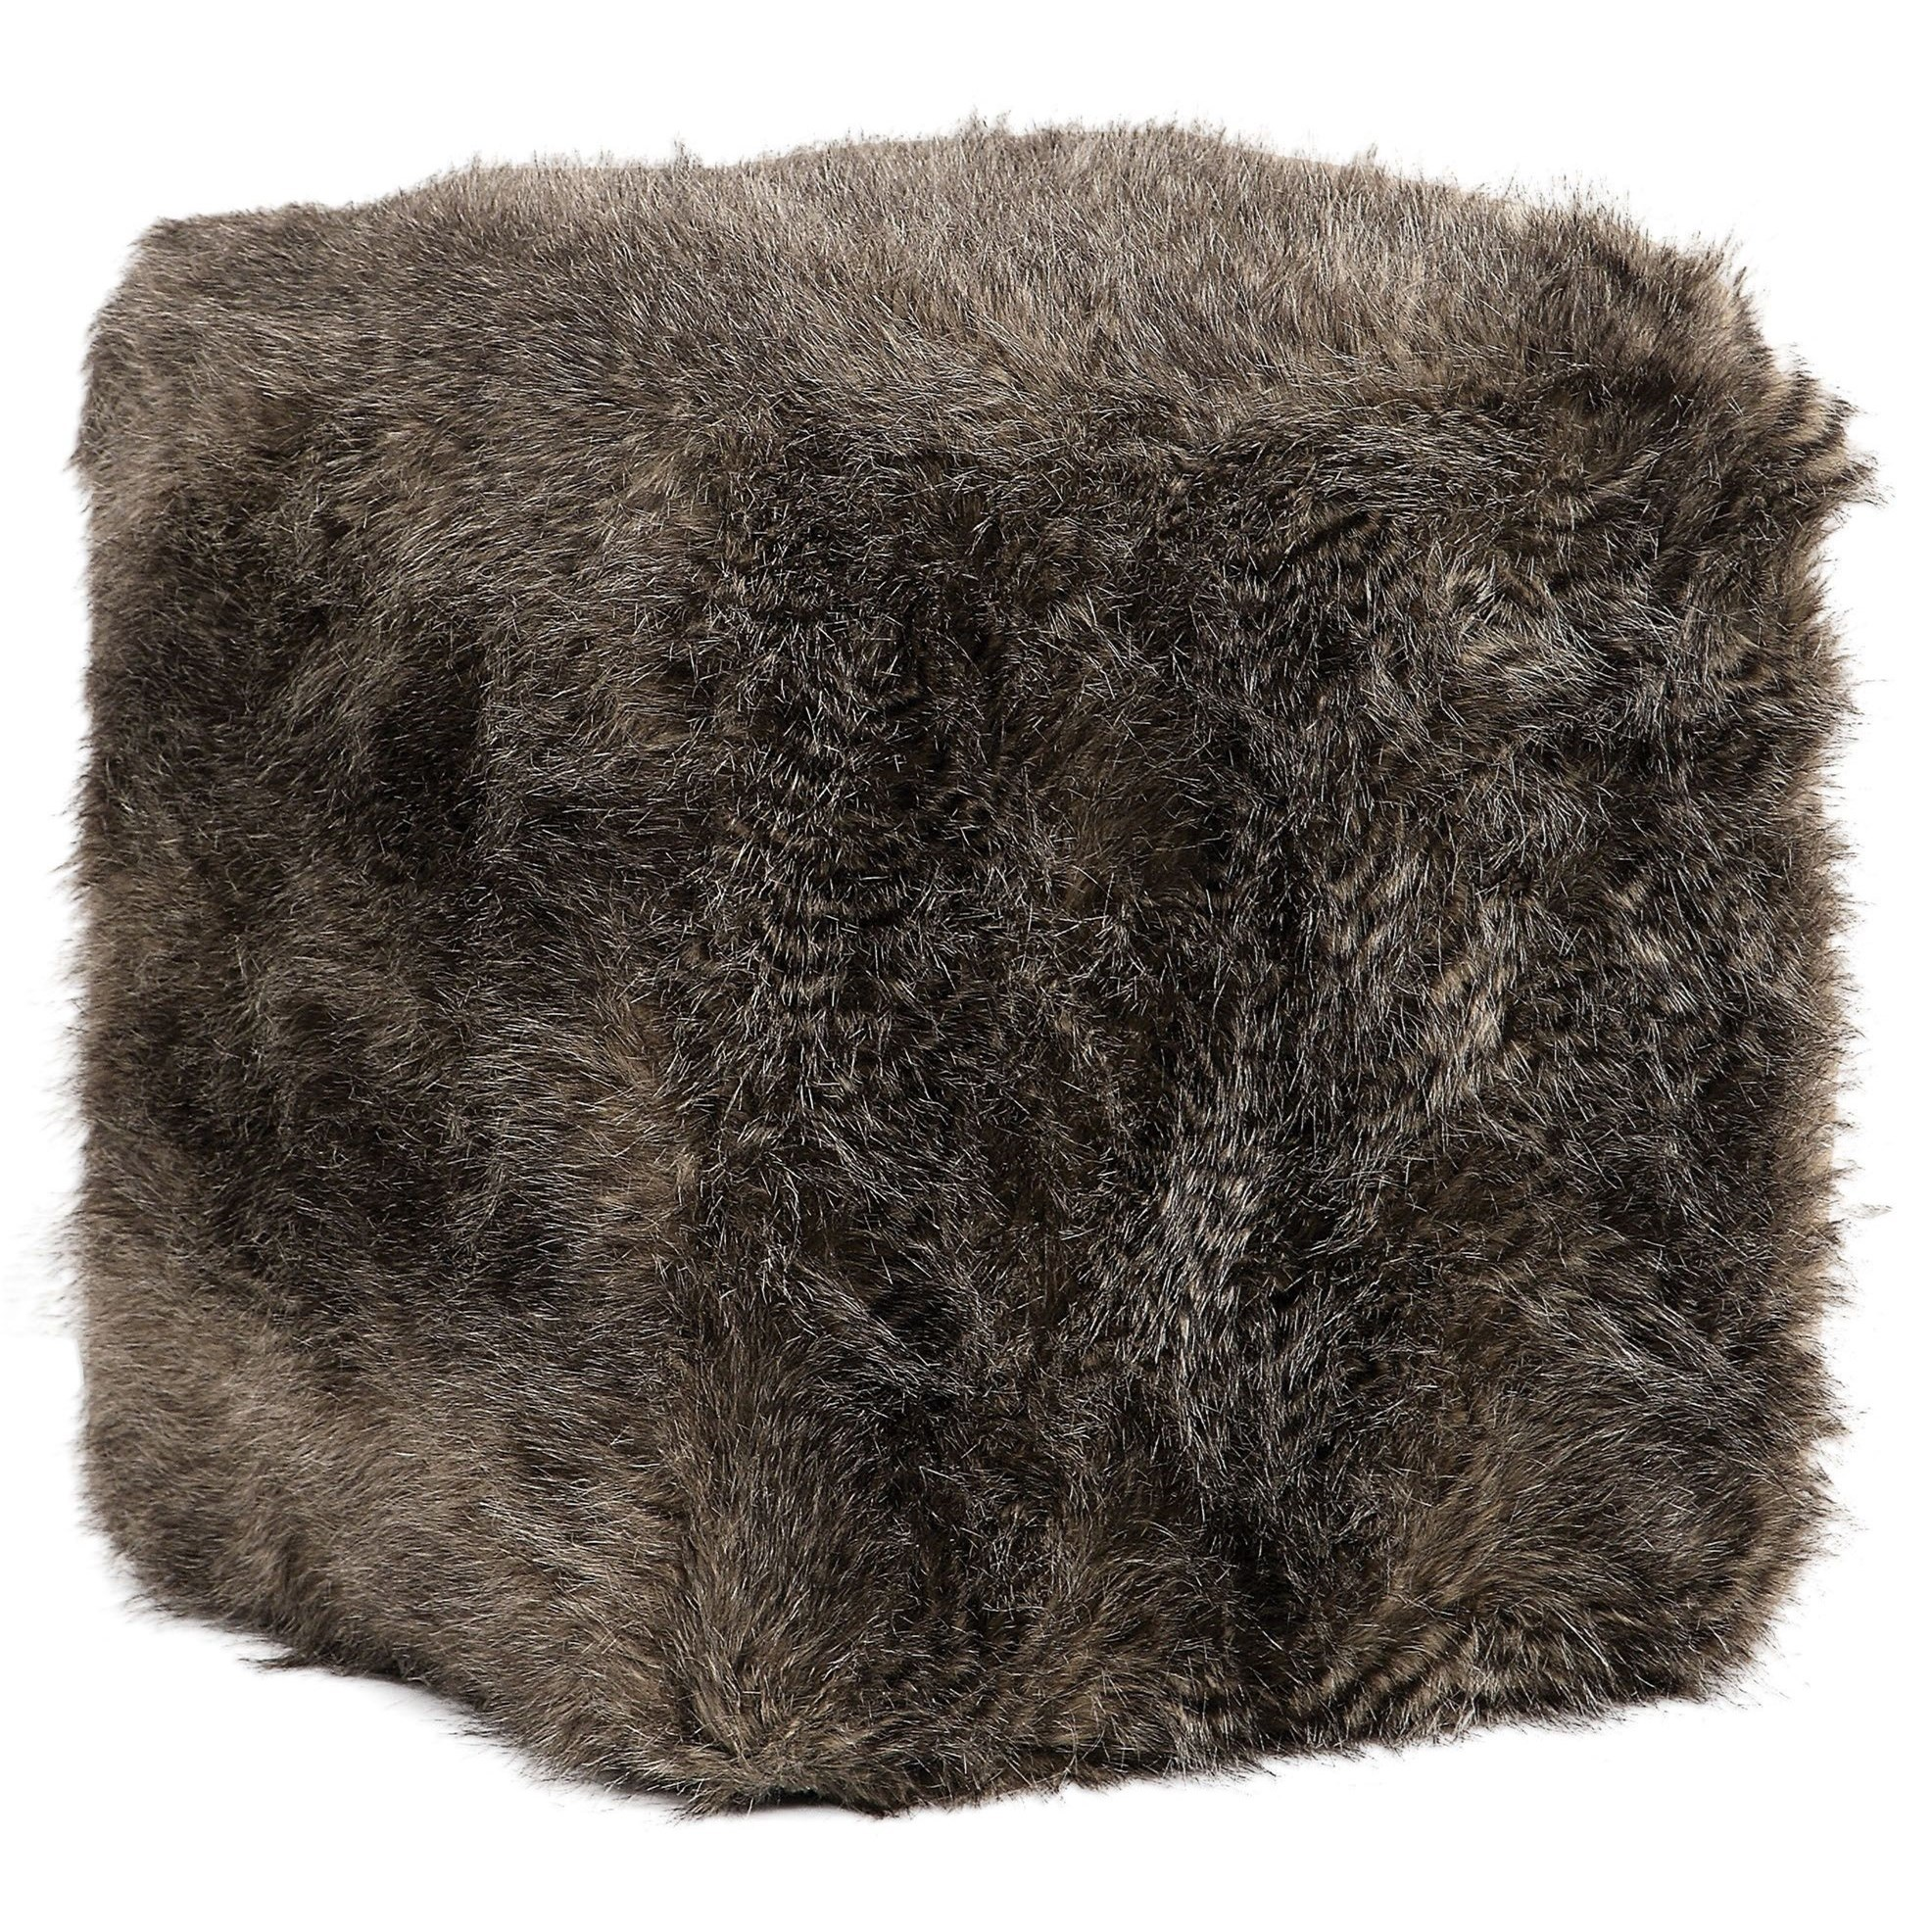 Accent Furniture - Ottomans Jayna Fur Ottoman by Uttermost at O'Dunk & O'Bright Furniture